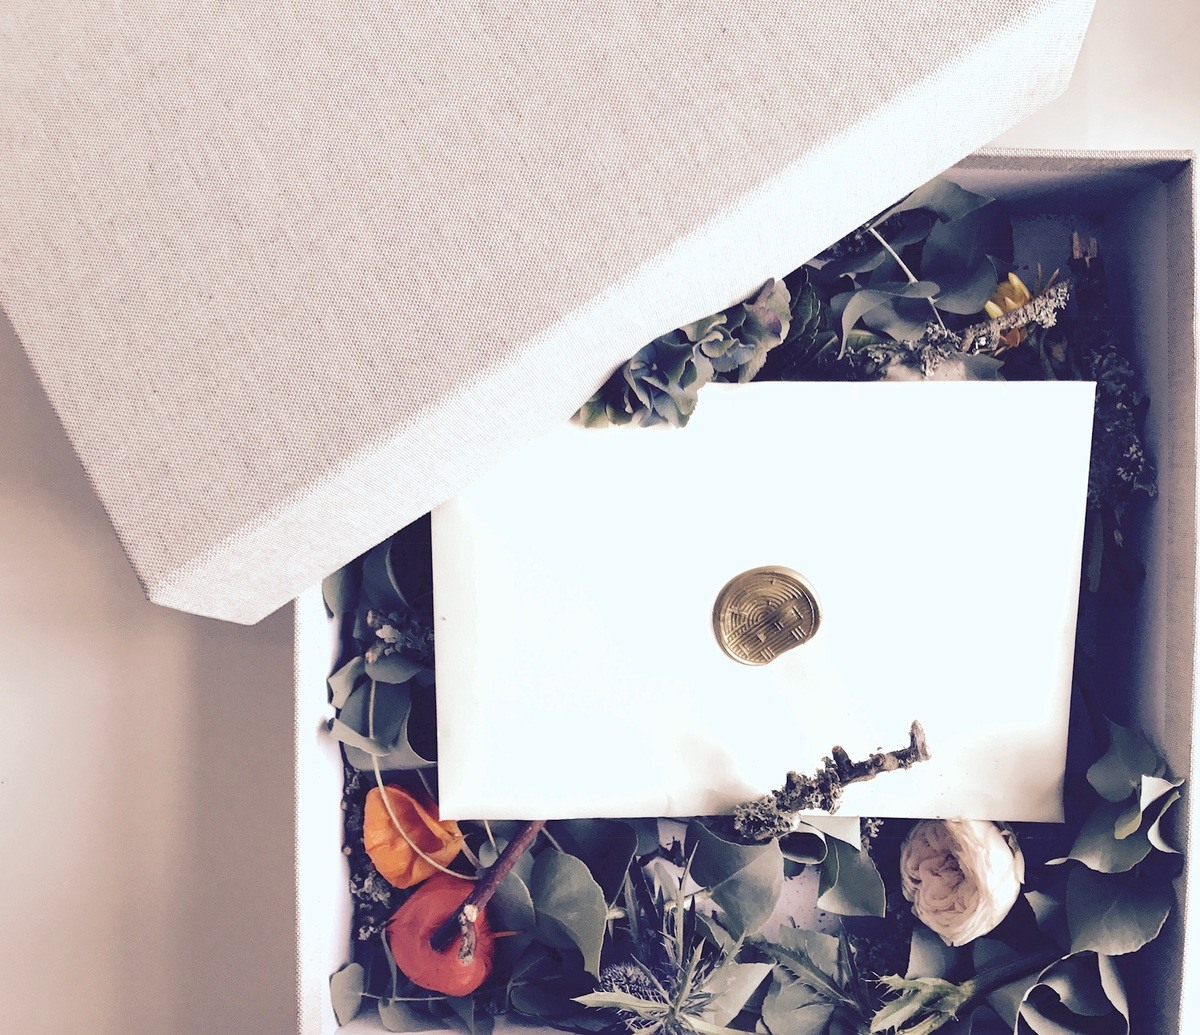 The YUME launch press kit featured a sustainable cardboard/organic cotton archive box by La Petite Papeterie Francaise.